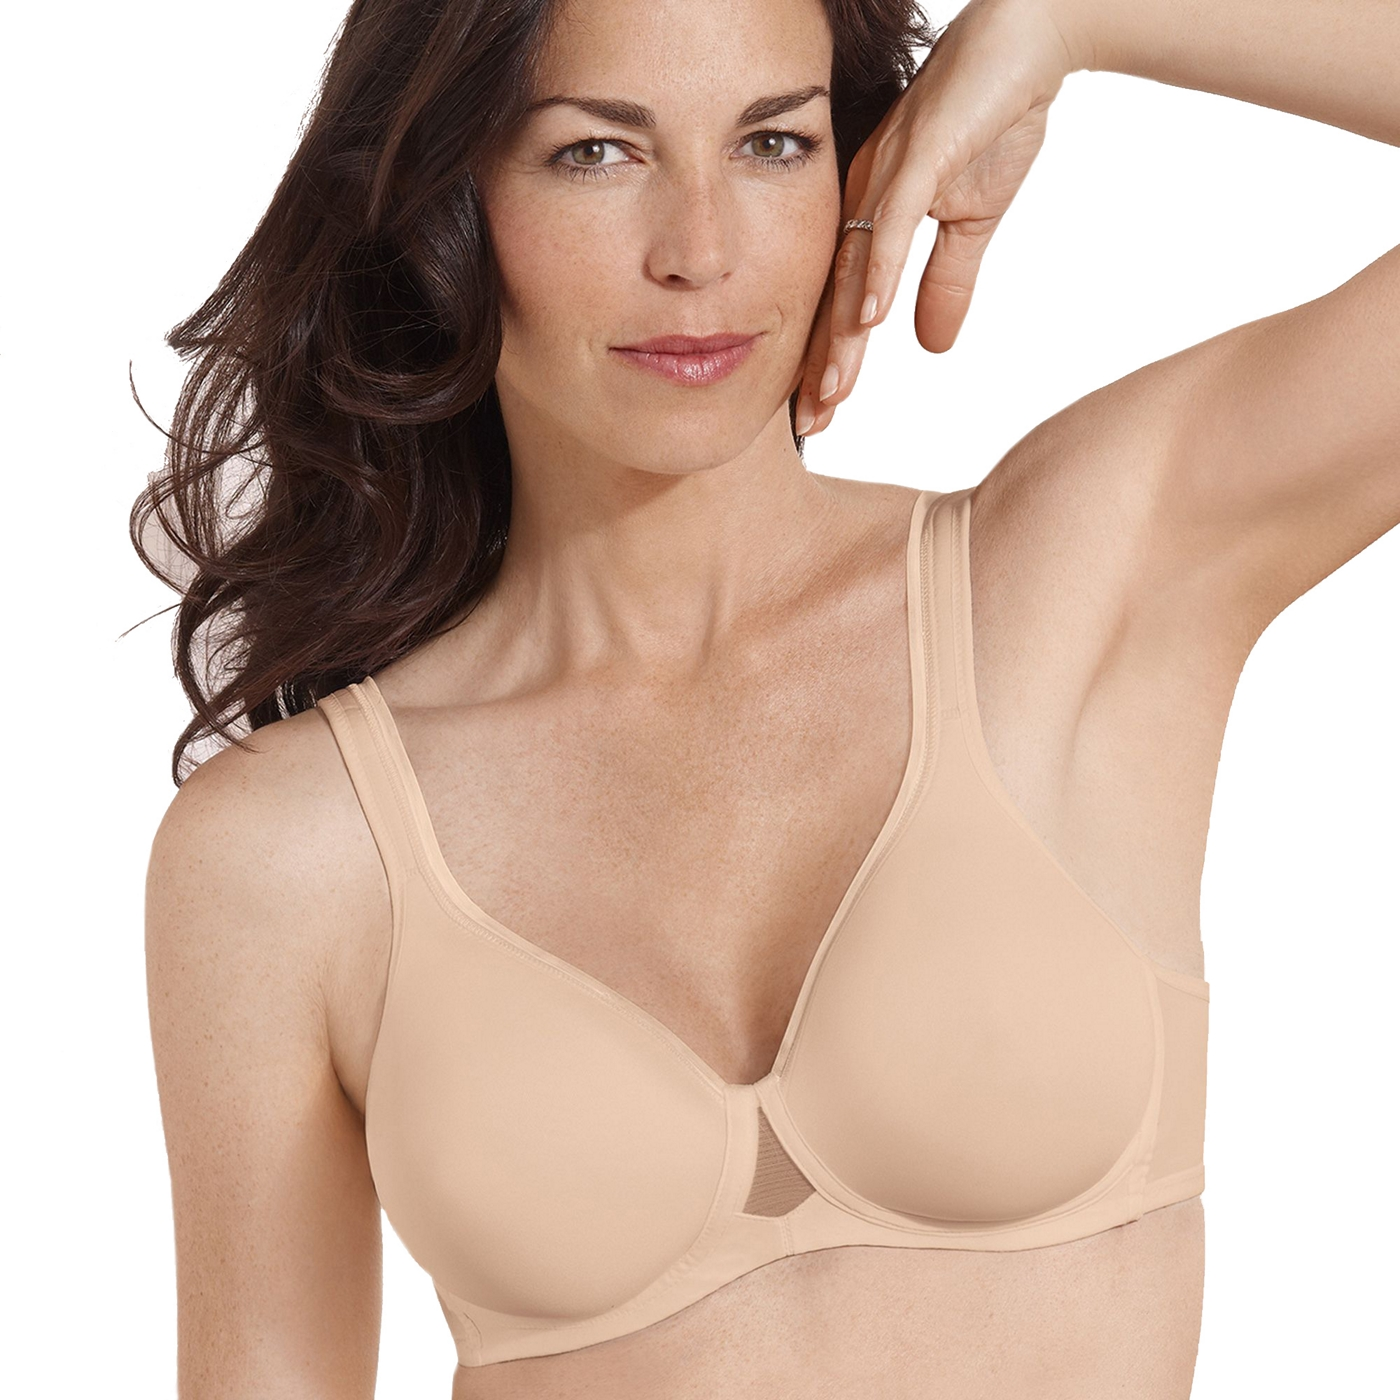 c6db19a7d2 Playtex Natural Absolute Comfort bra on PopScreen